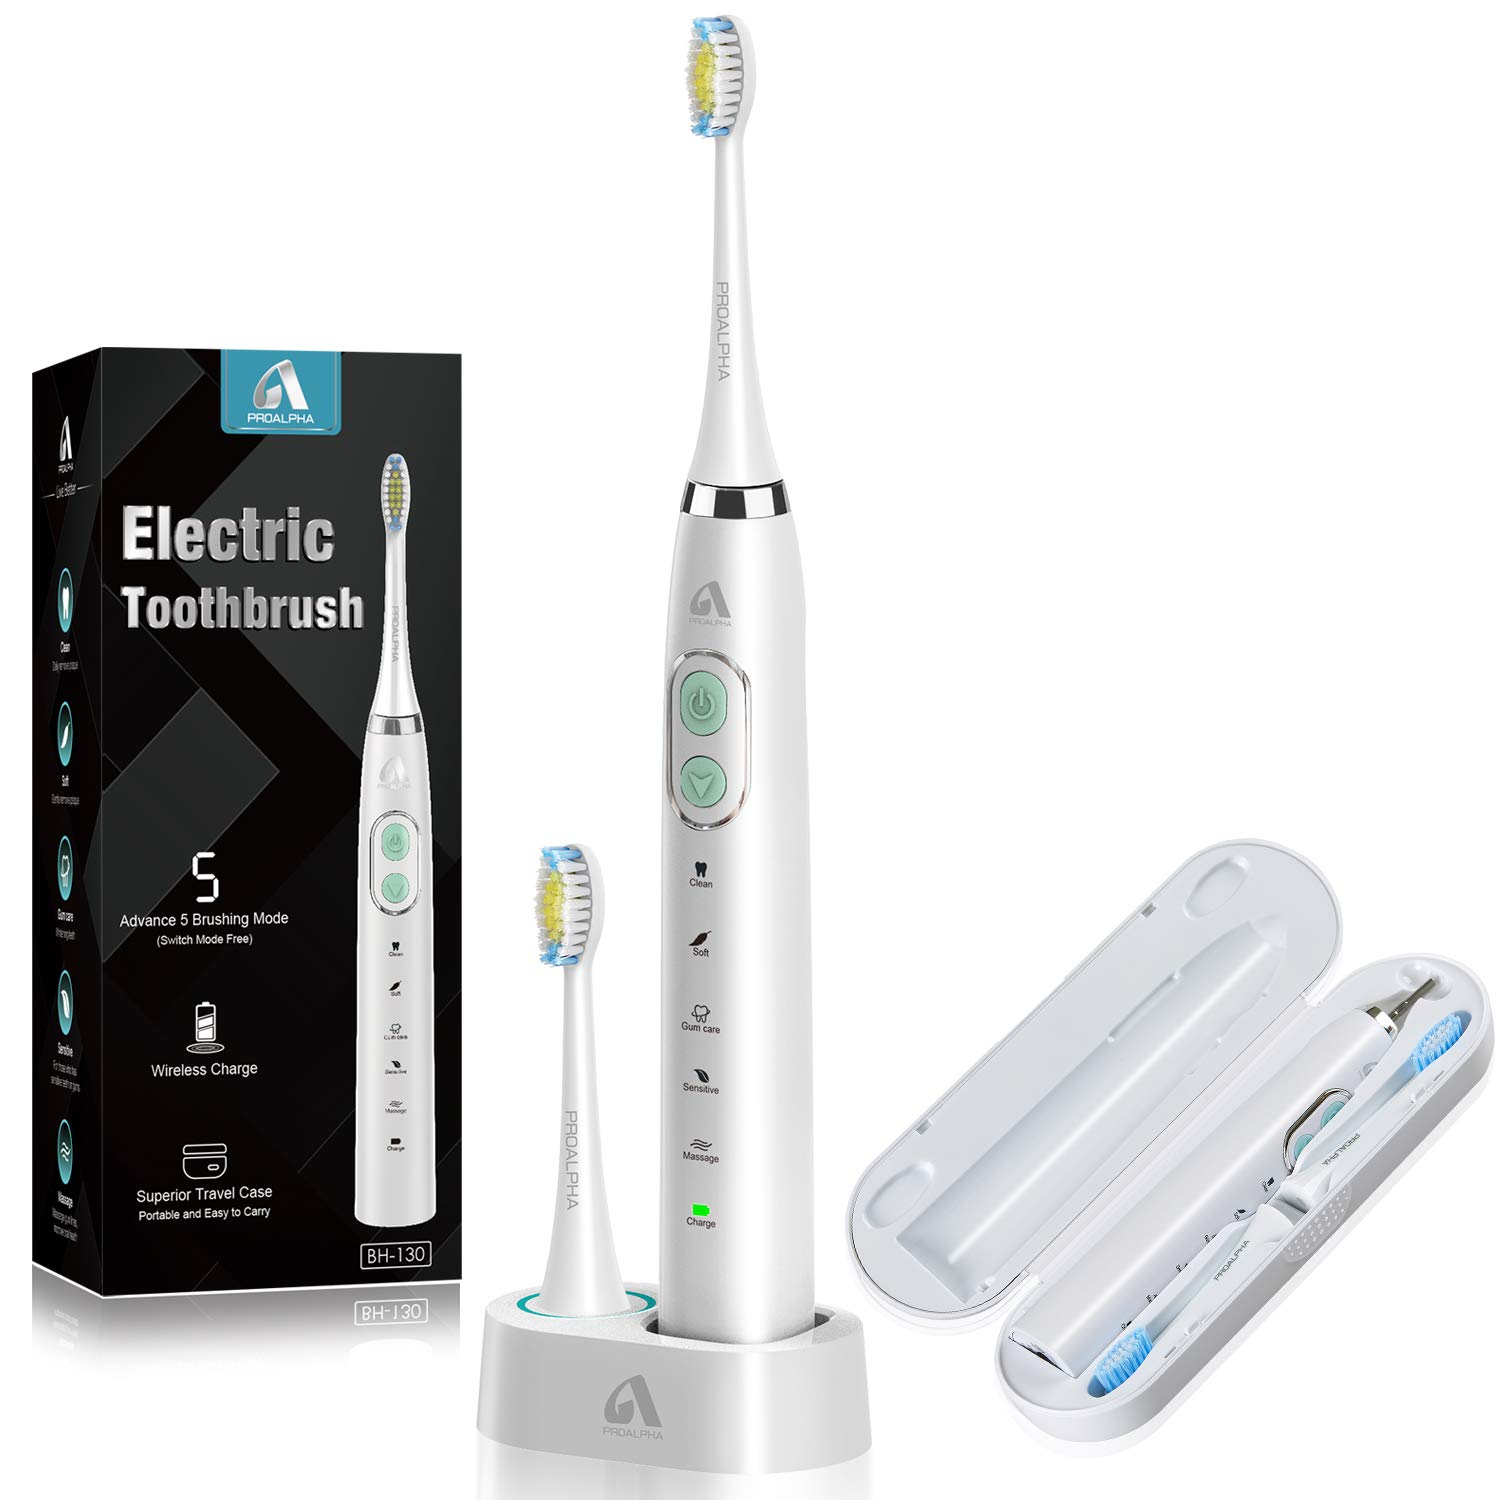 Proalpha Sonic Electric Toothbrush for Adults, 5 Optional Brushing Modes Rechargeable Toothbrushes with 6 Replacement Heads 2 Minutes Timer, Travel Case Included white